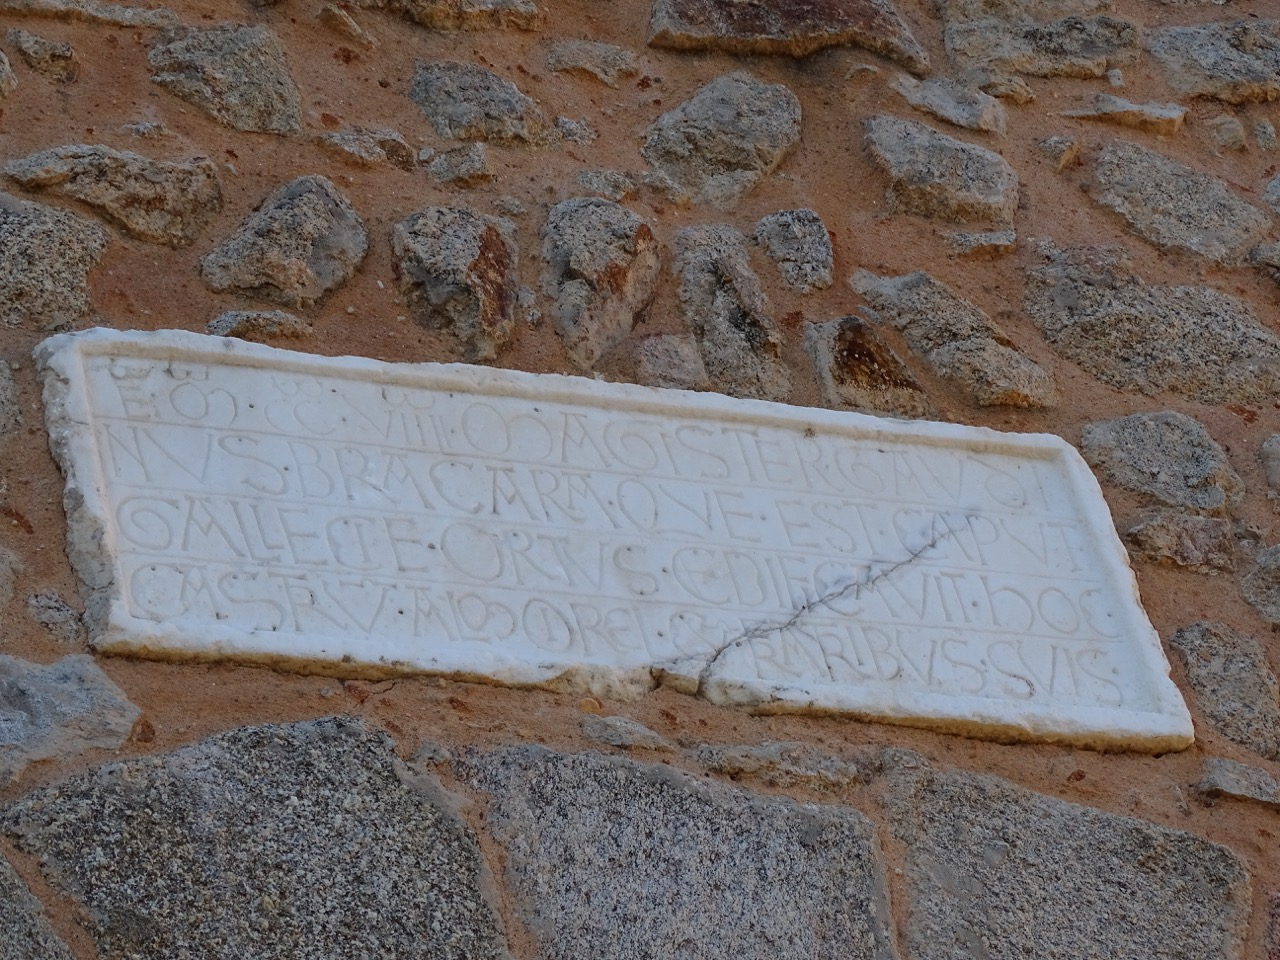 The inscription